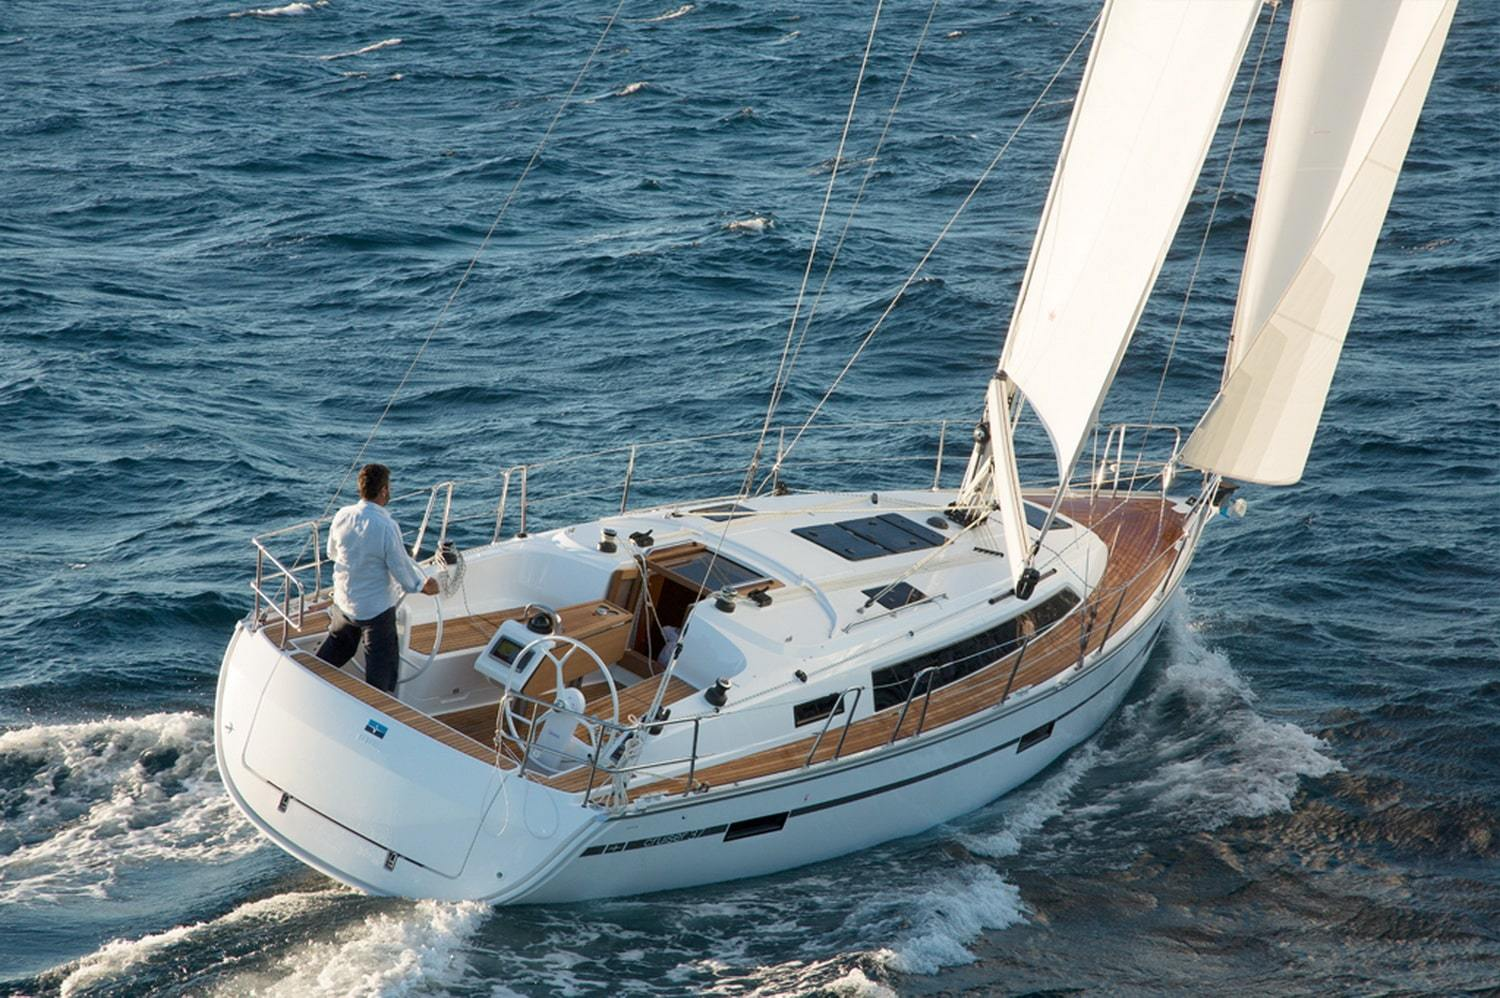 Full Team Bavaria Charter Boat 37 Cruiser